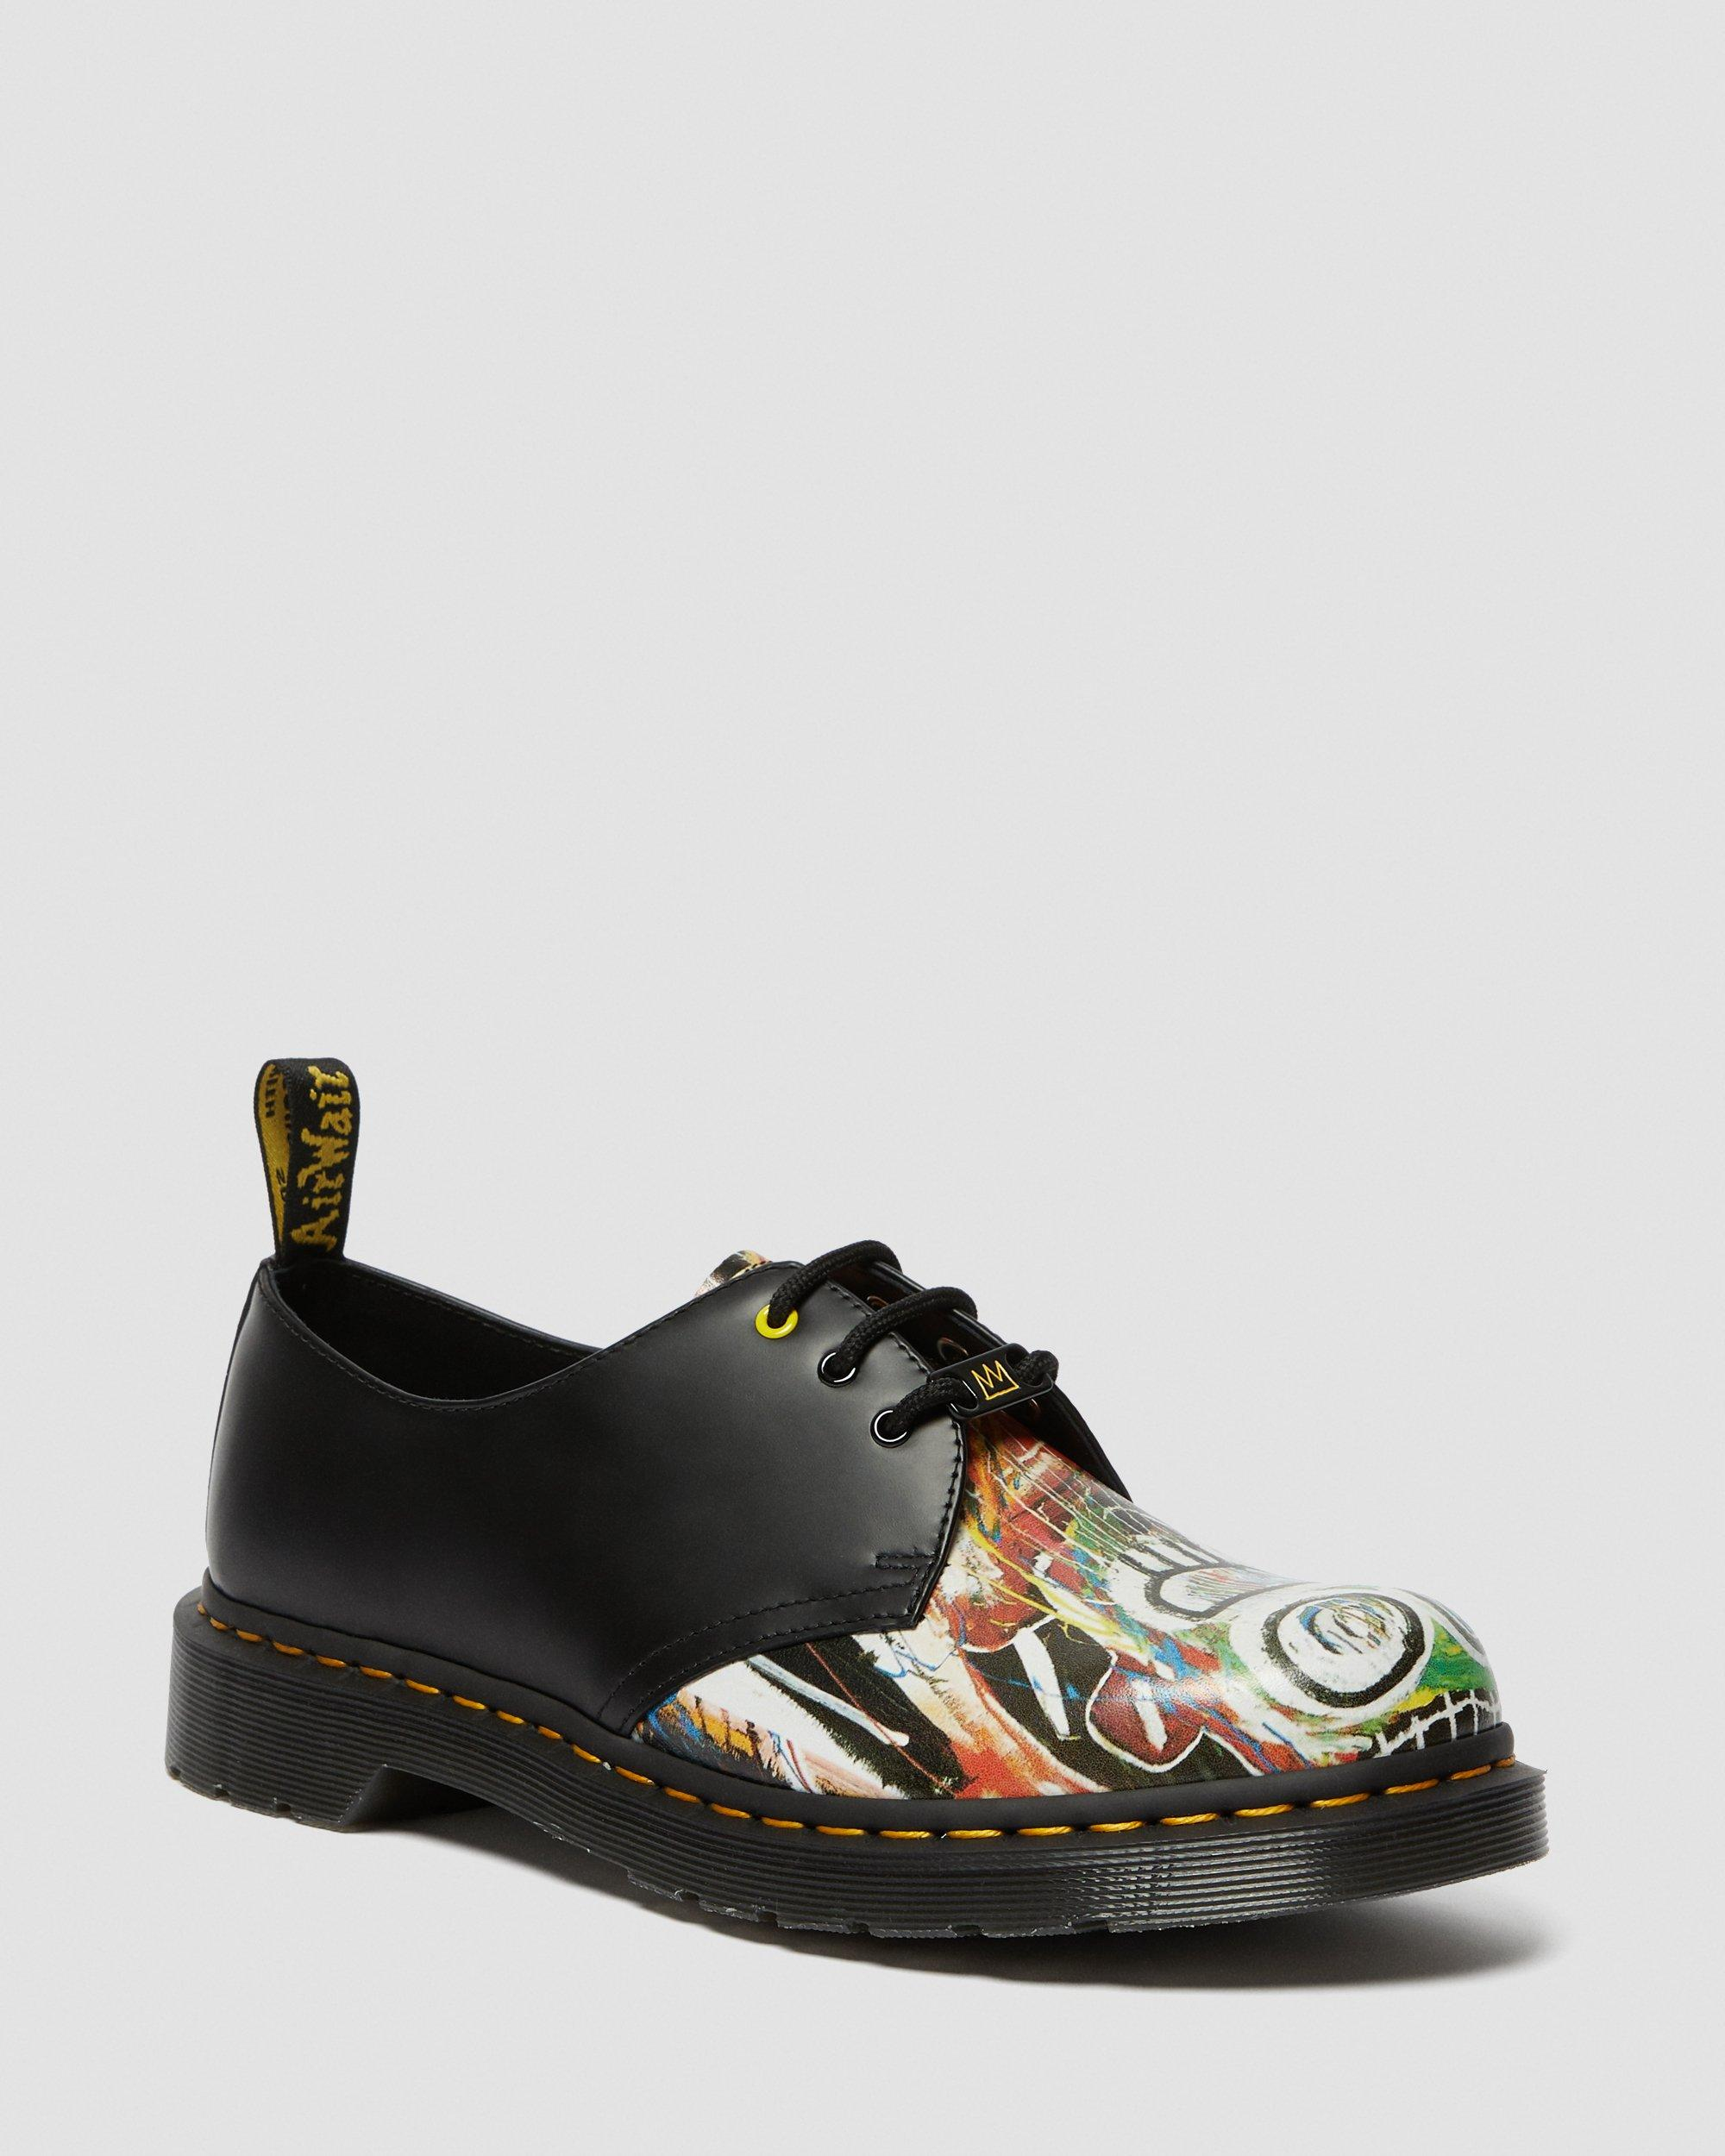 1461 BASQUIAT LEATHER OXFORD SHOES   Dr